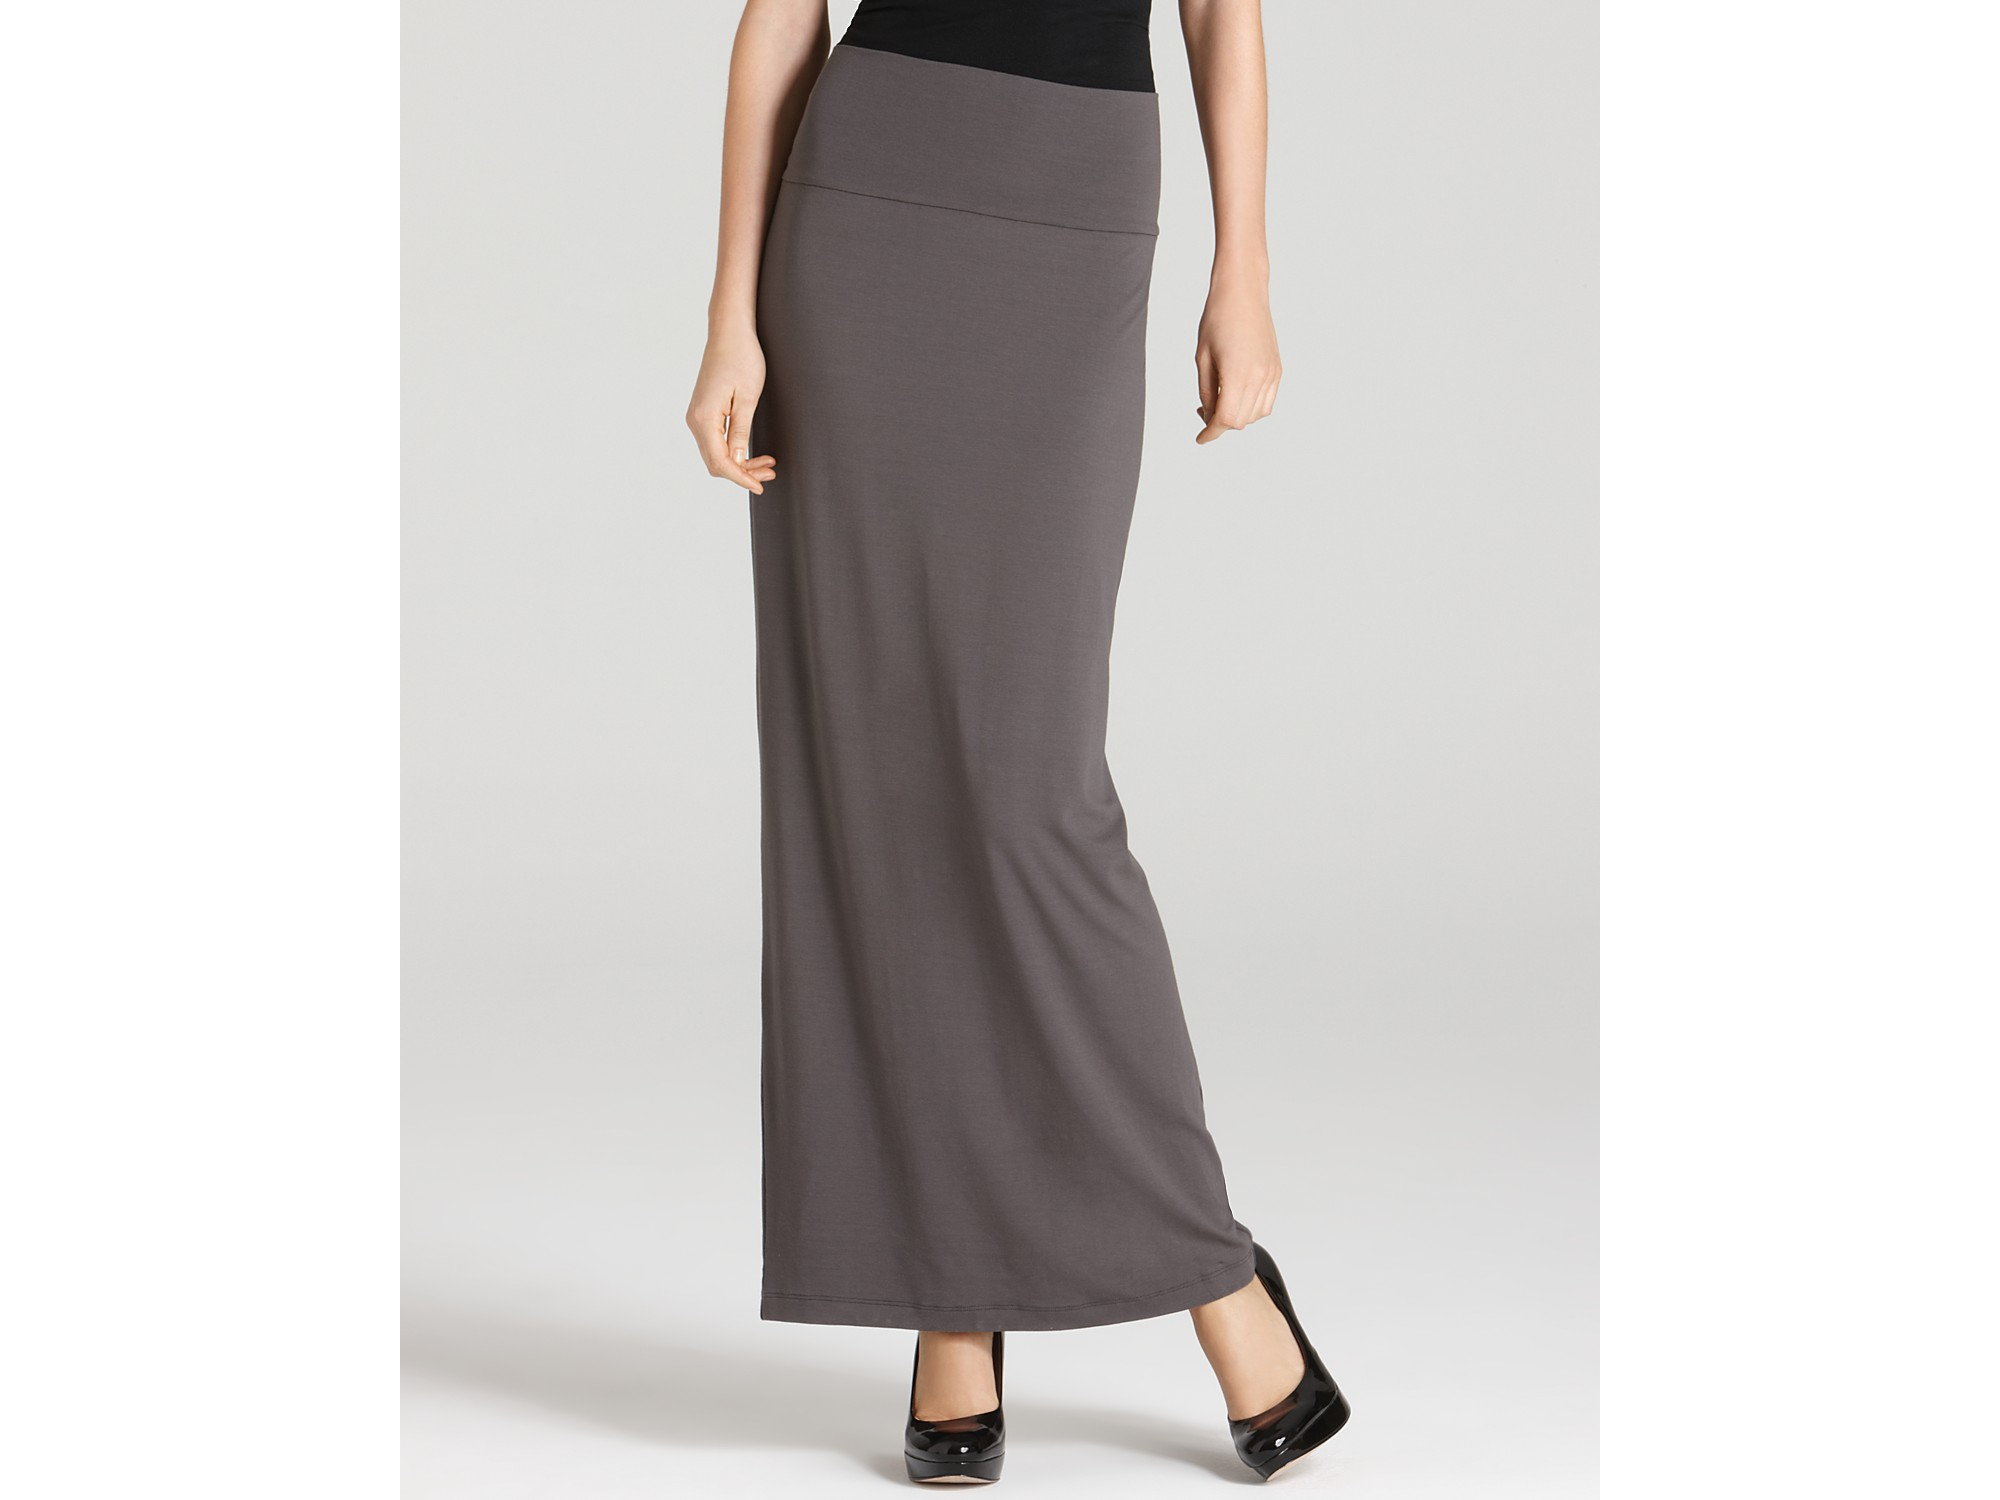 Straight Long Skirt - Dress Ala